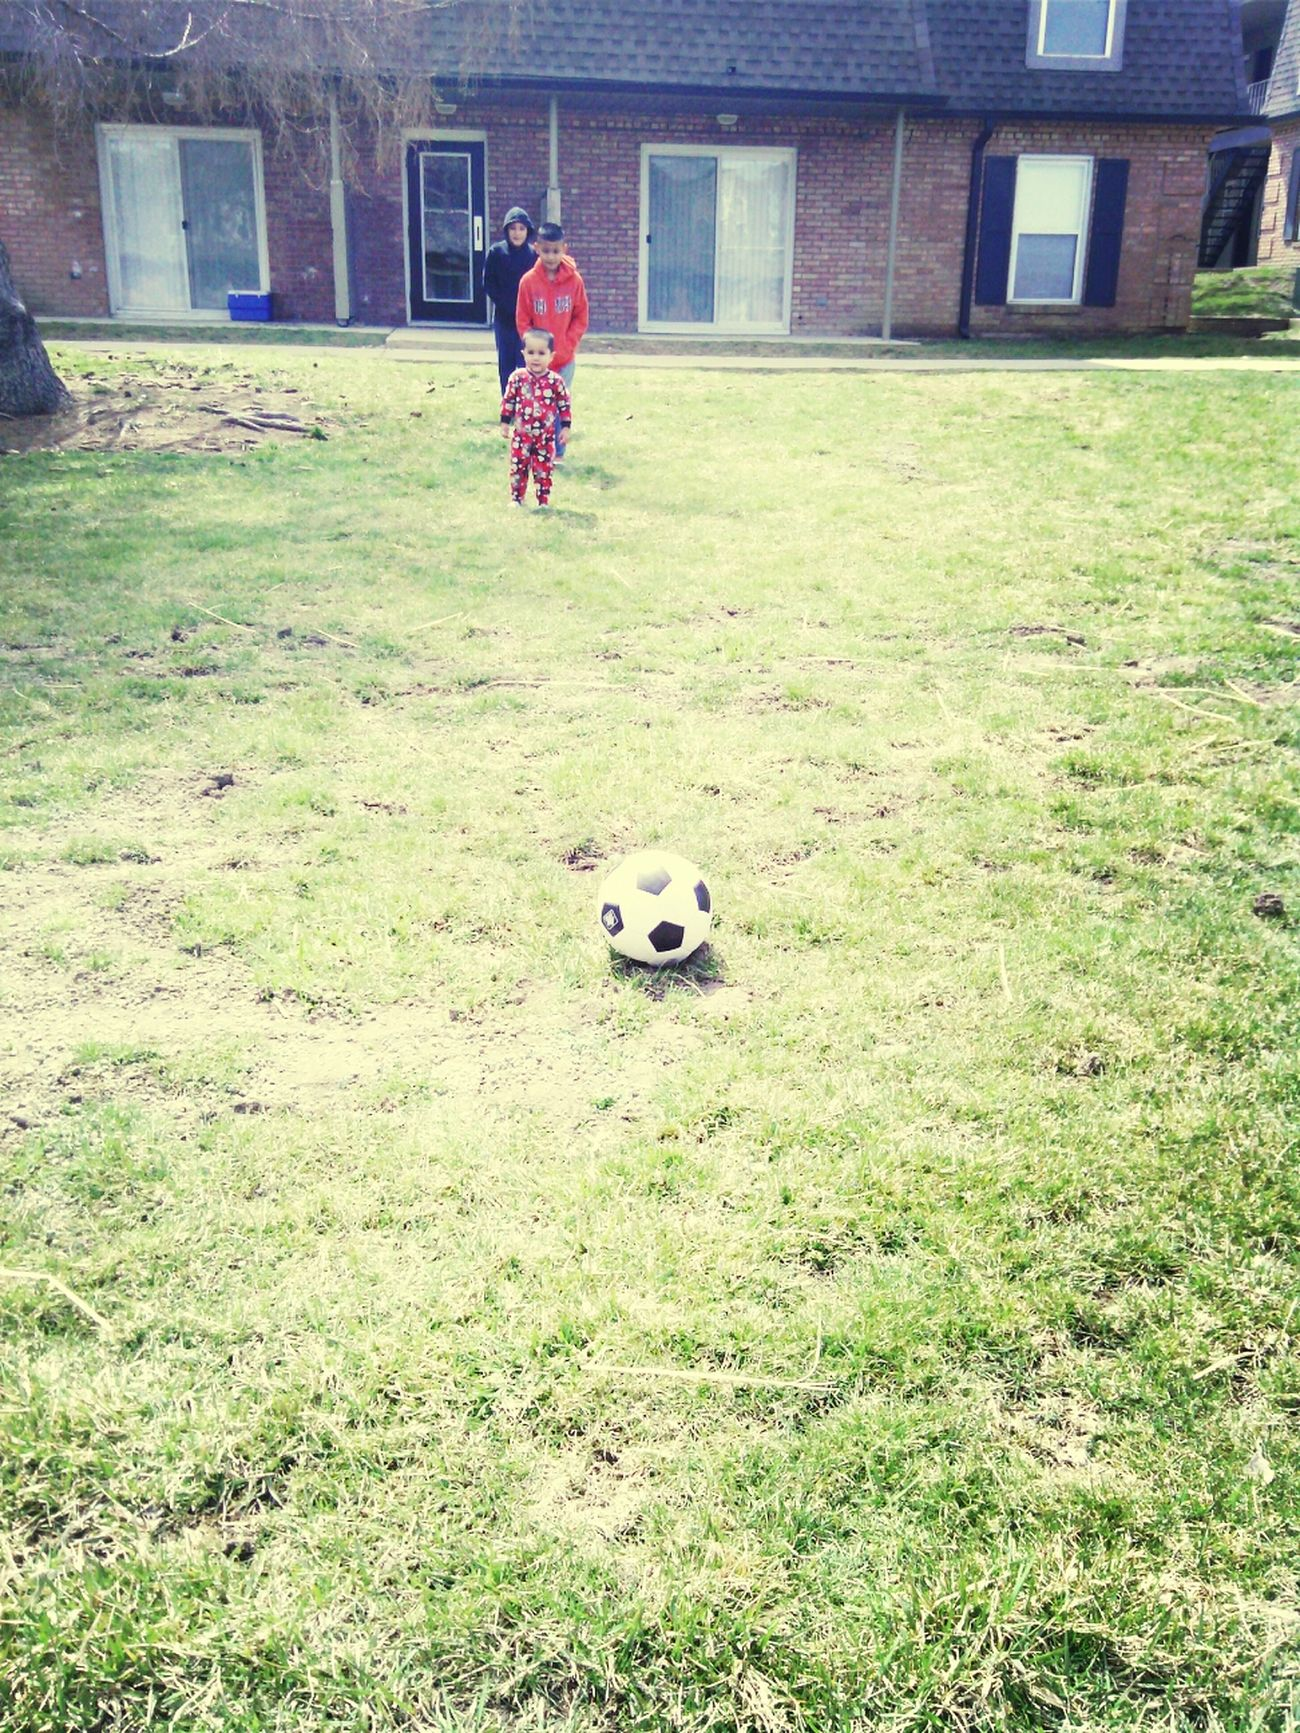 Soccer W/ The Little Kids {{: